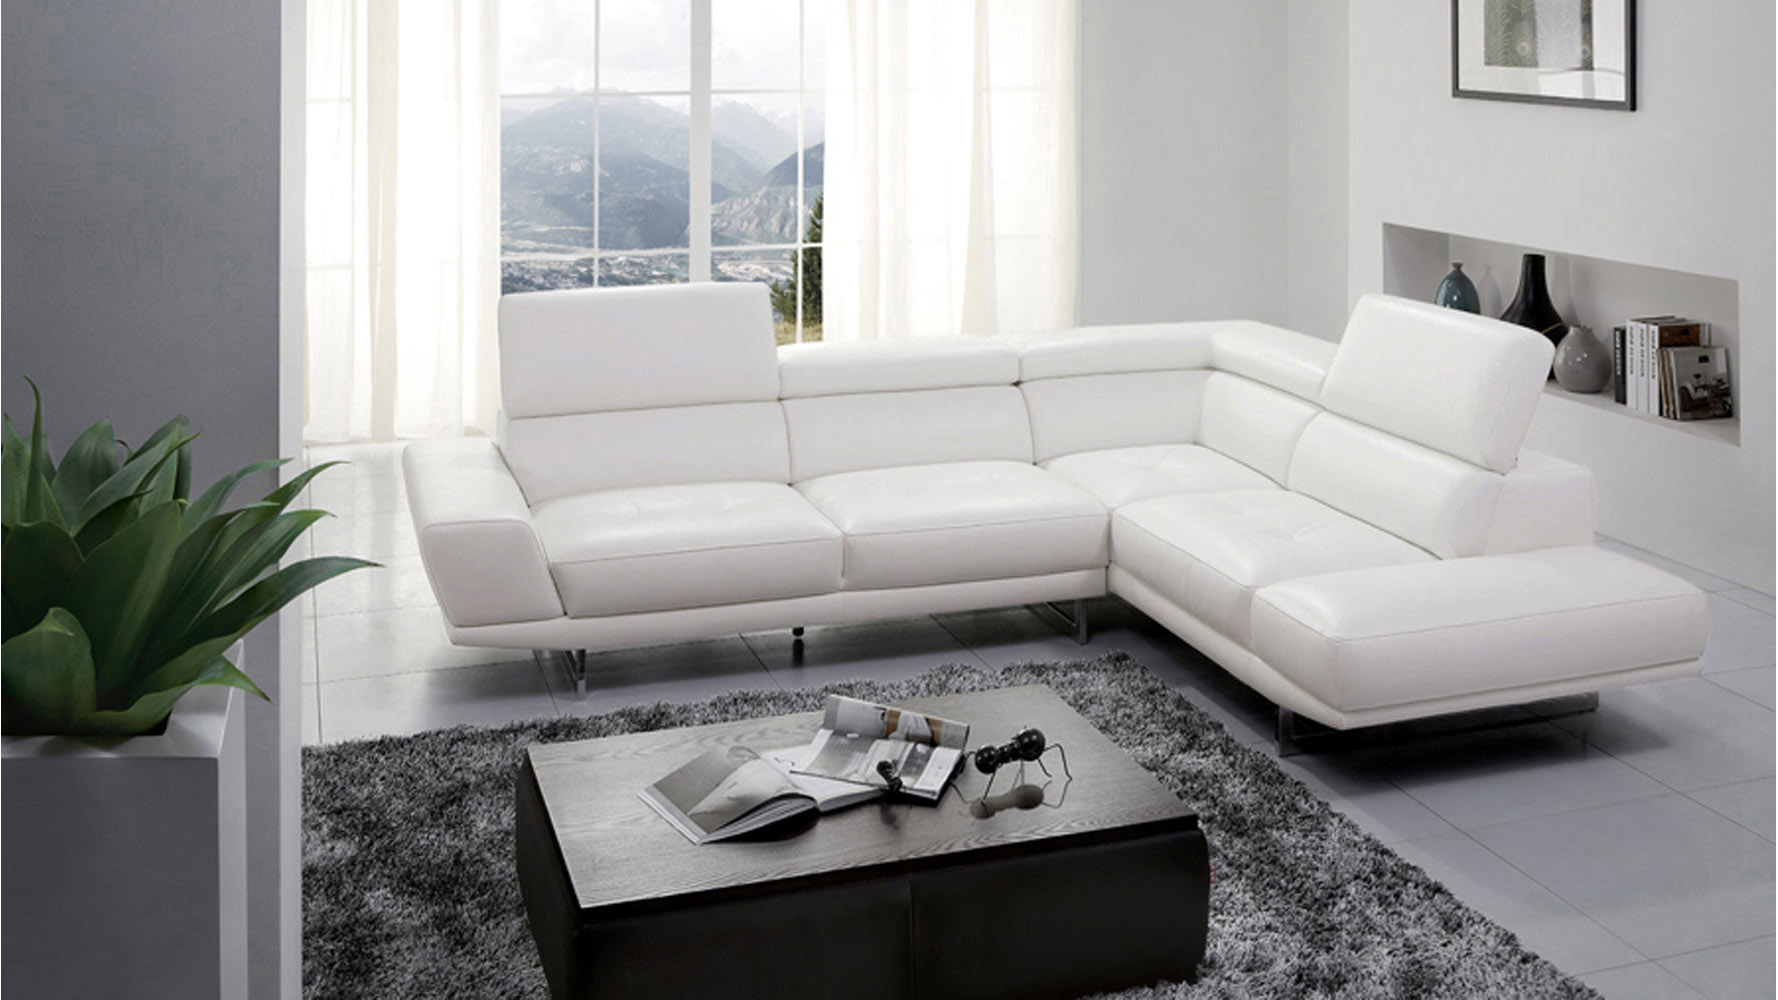 Posh White Top Grain Leather Modern Corner Sectional Sofa